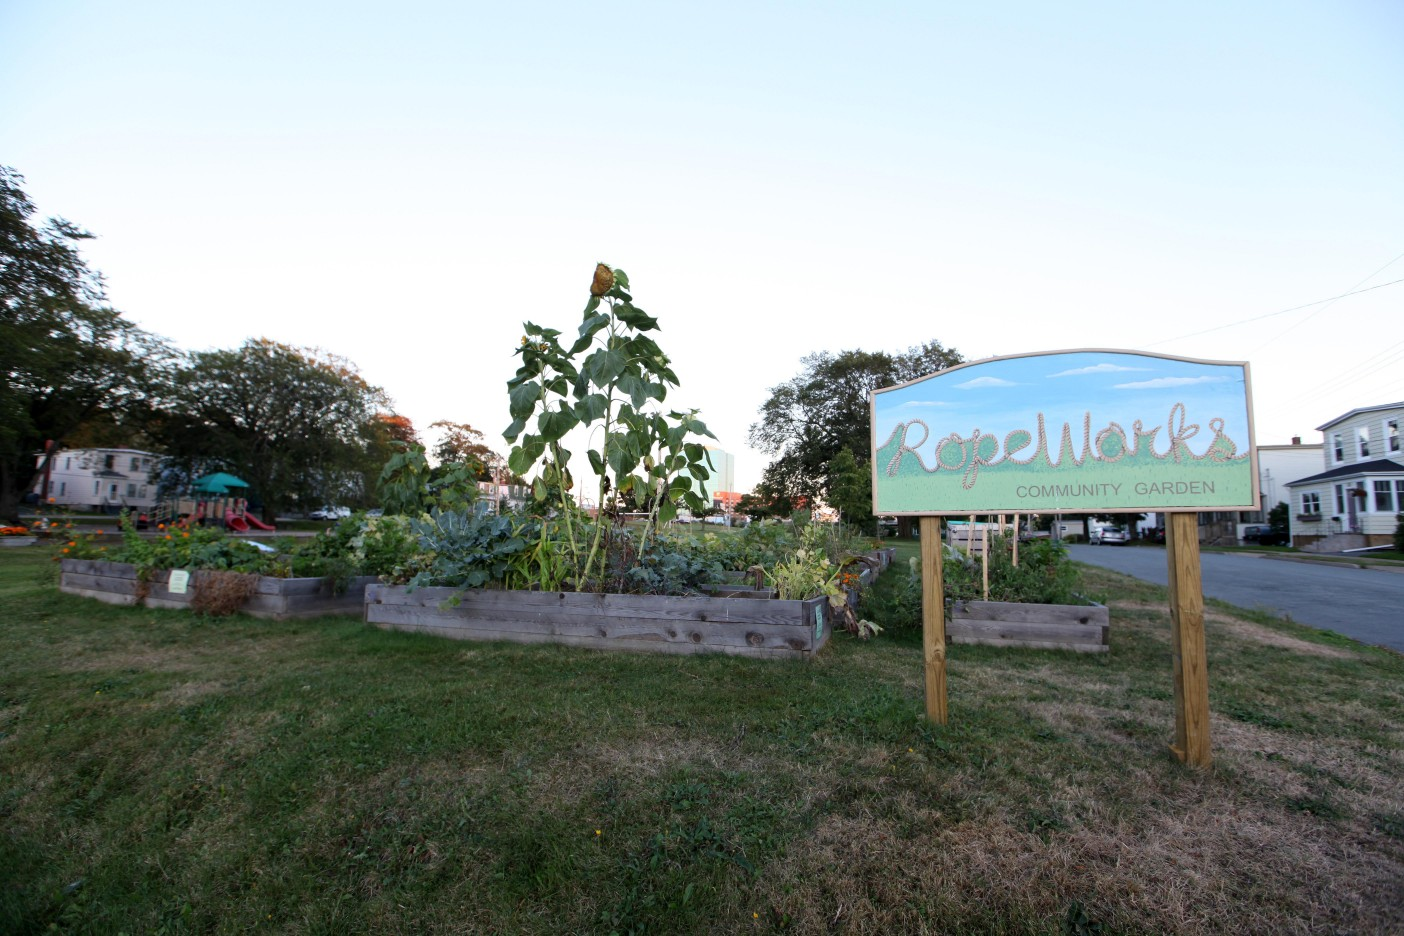 It's been a successful growing season for members of the Ropeworks Community Garden in Victoria Park. Photo: Megan Hirons Mahon